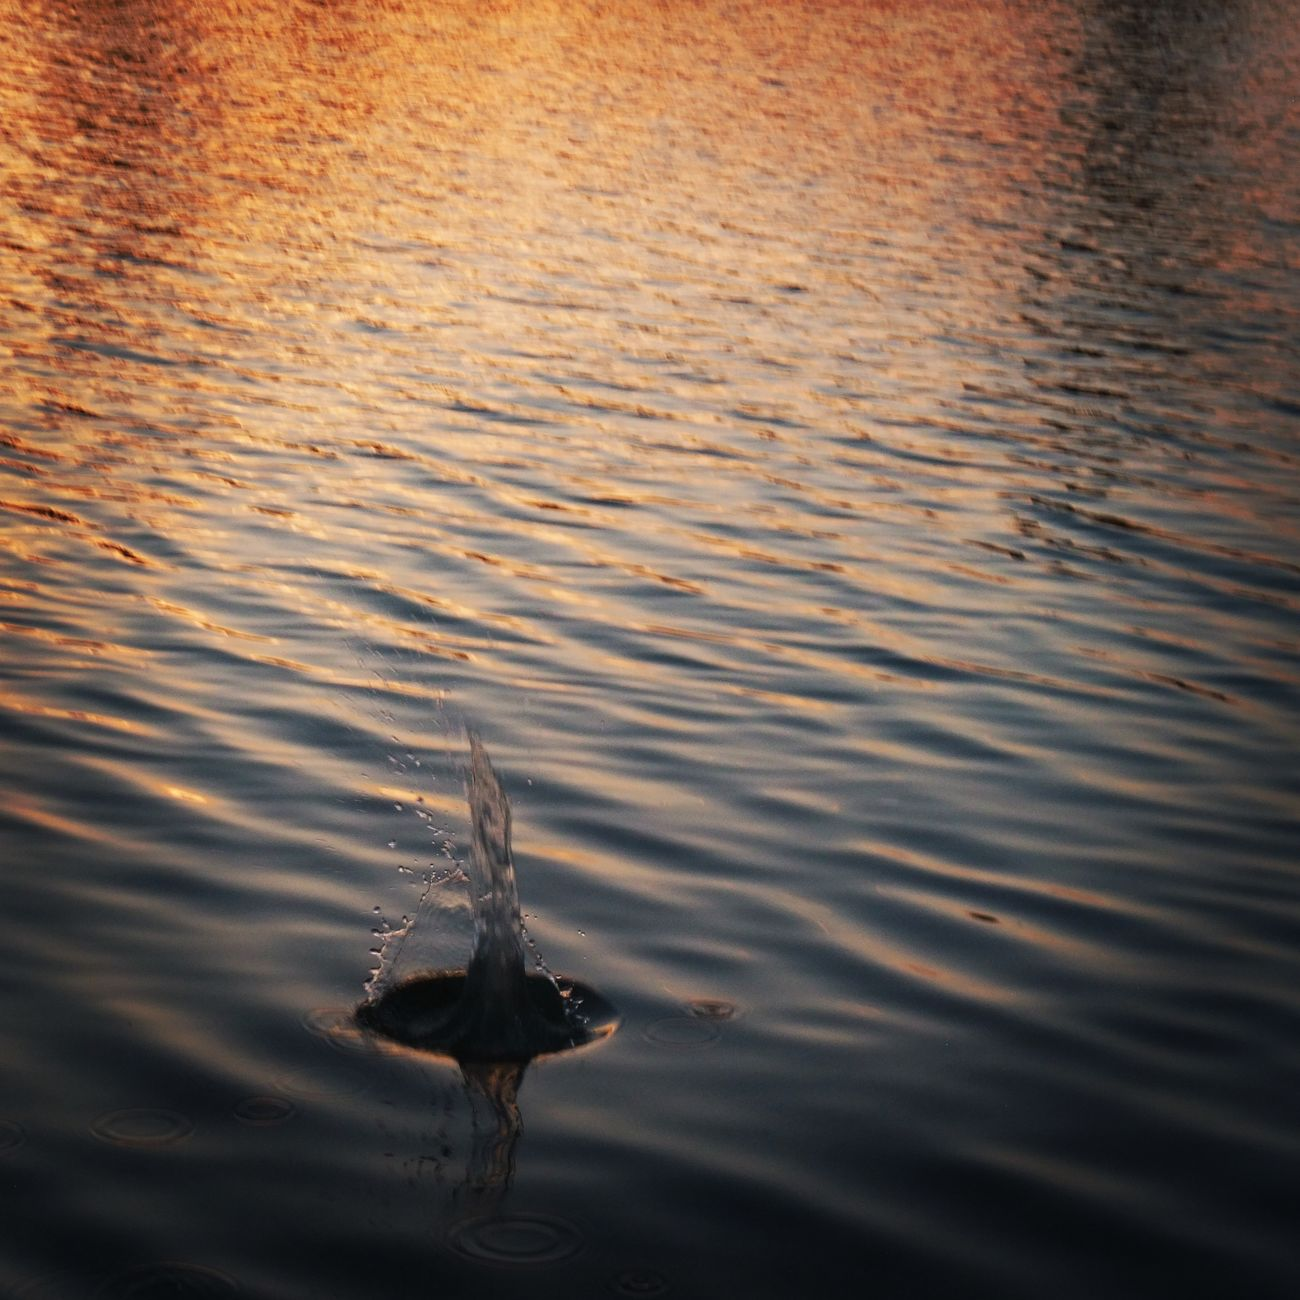 Took so much time 😂😂😂👍👍 Rippled Water Reflection Sunset Lake Outdoors No People Nature Swimming Backgrounds Day Close-up Saudi Arabia Jeddah😍❤️ Water Hard Rock